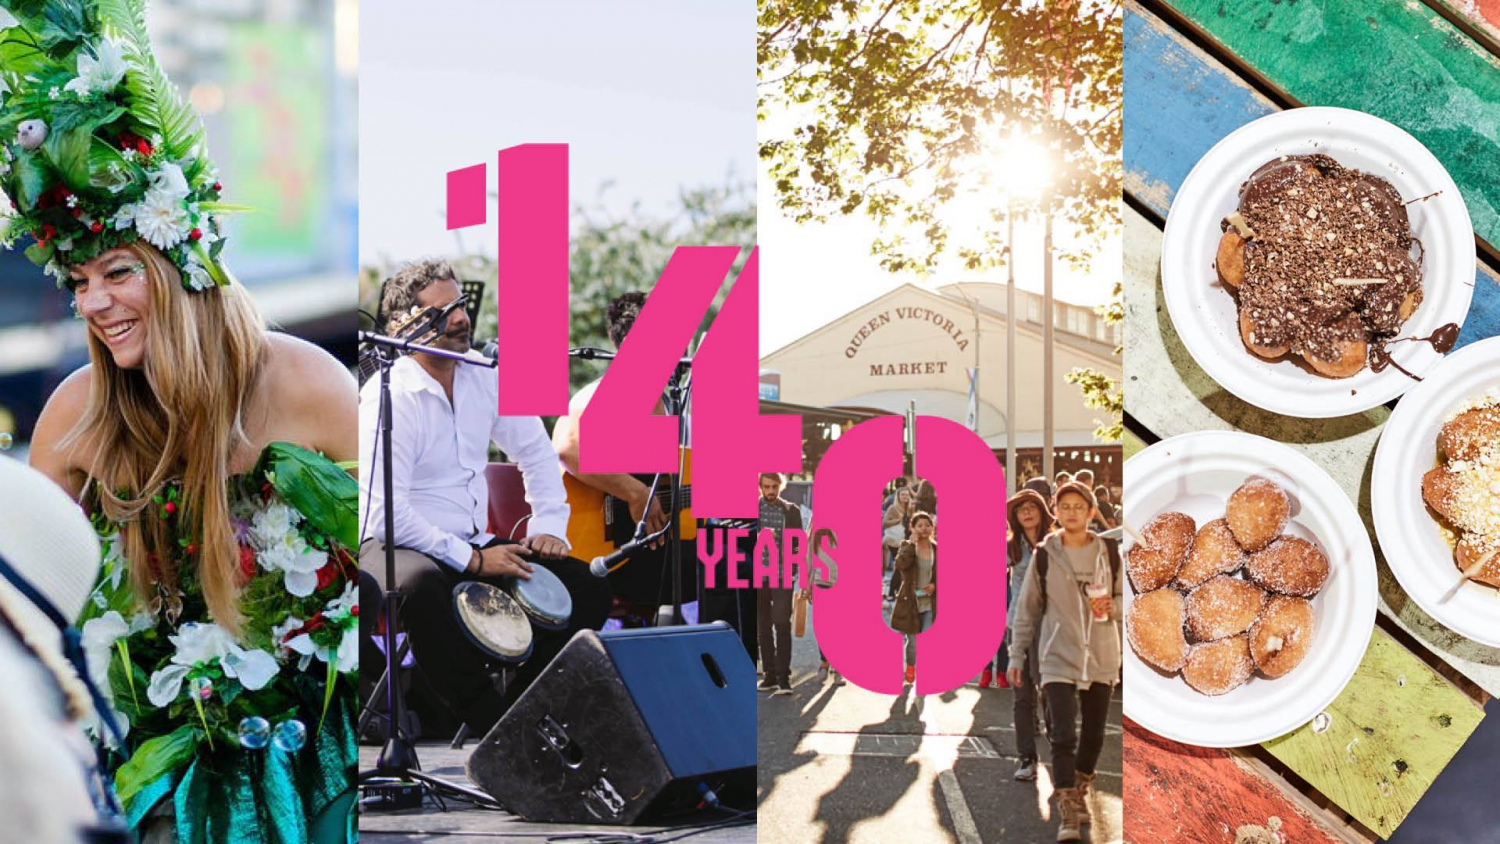 Queen Vic Market's 140 Years Street Party!